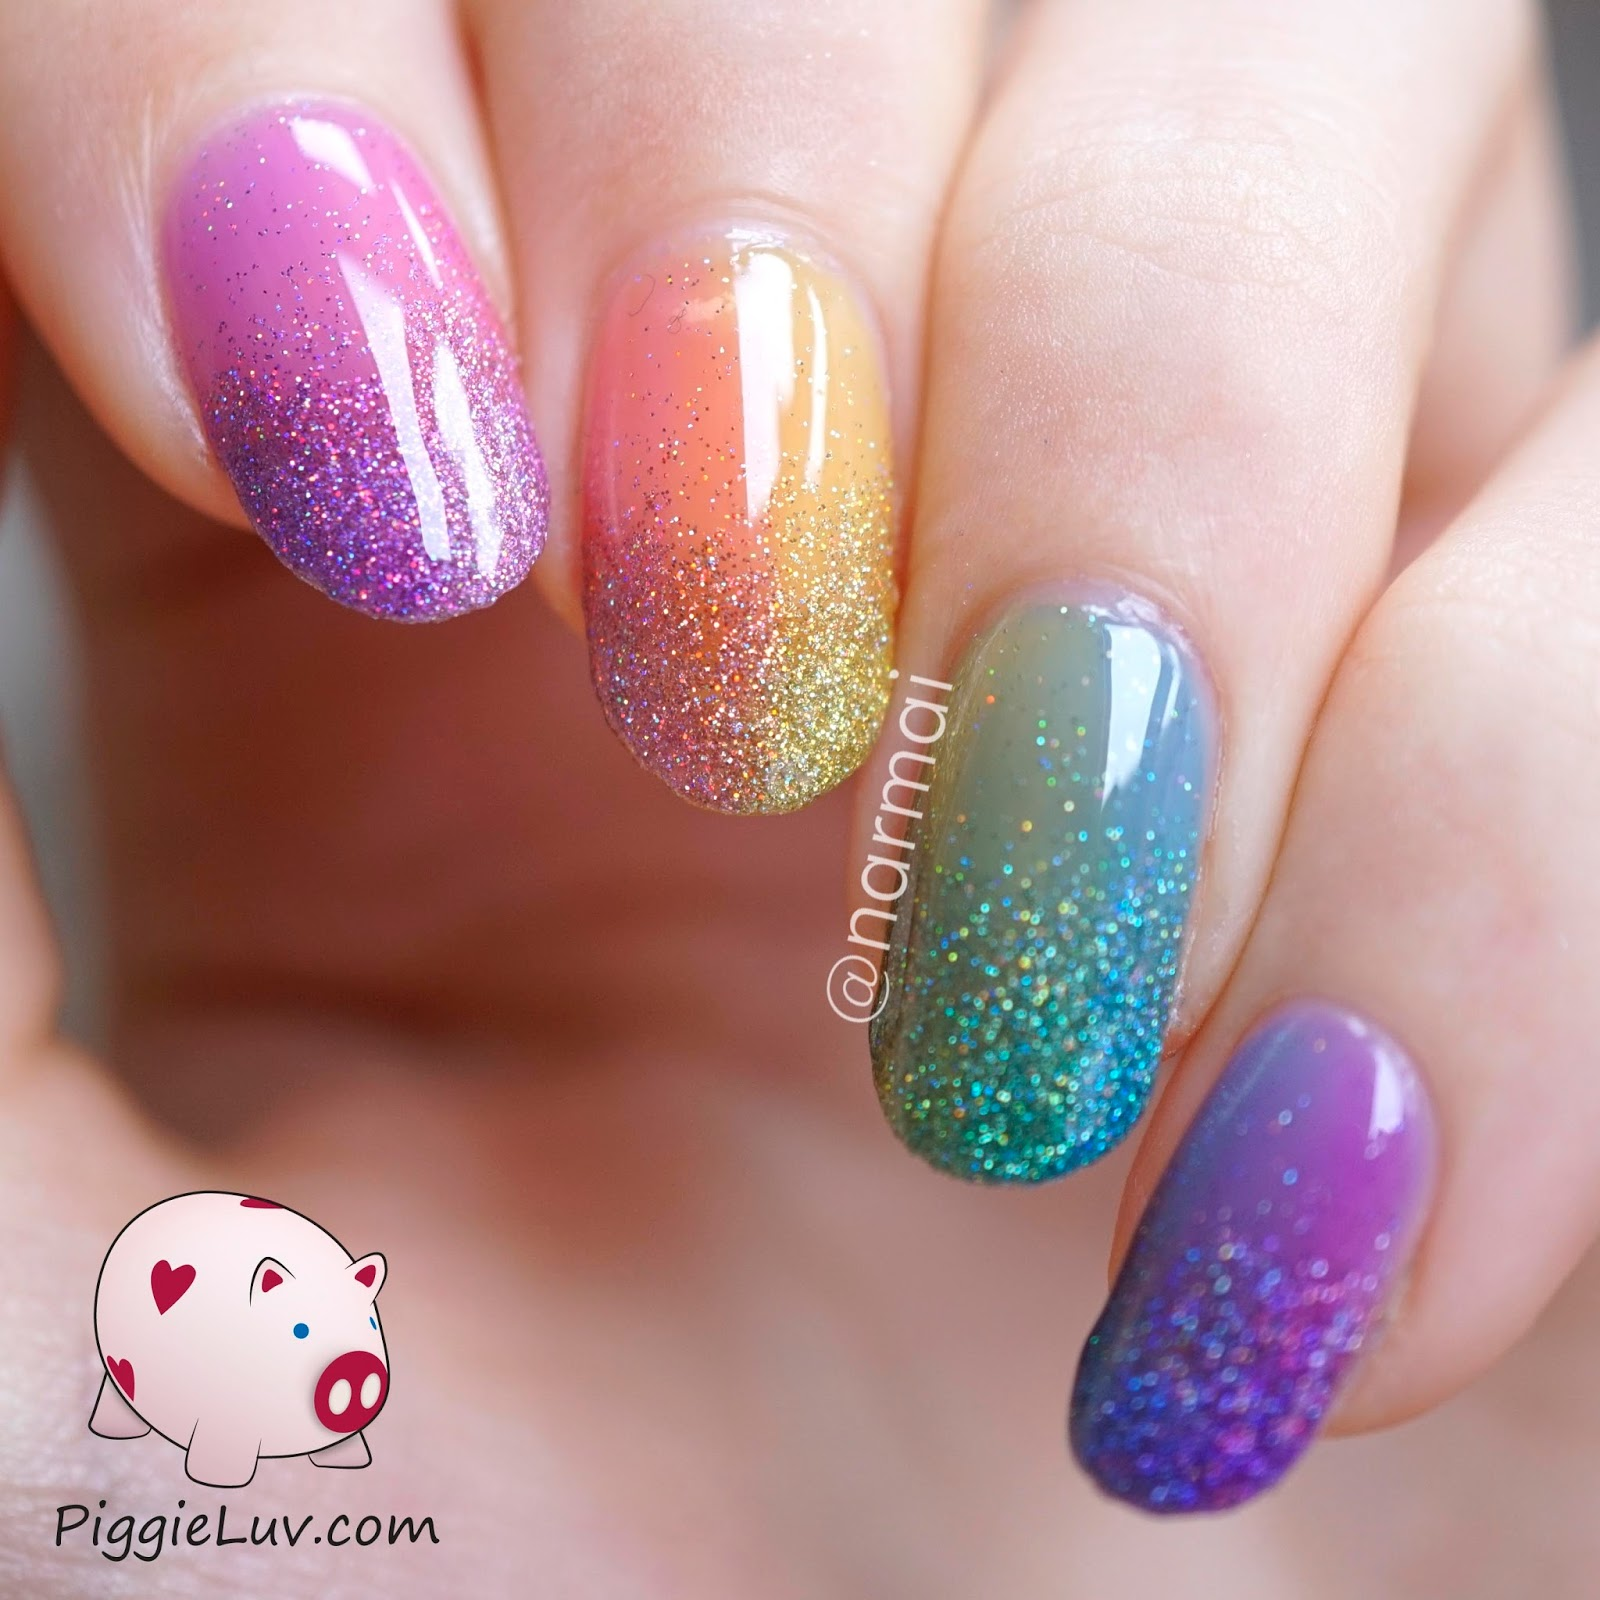 Cool Nail Art: Glitter Nail Art Ideas